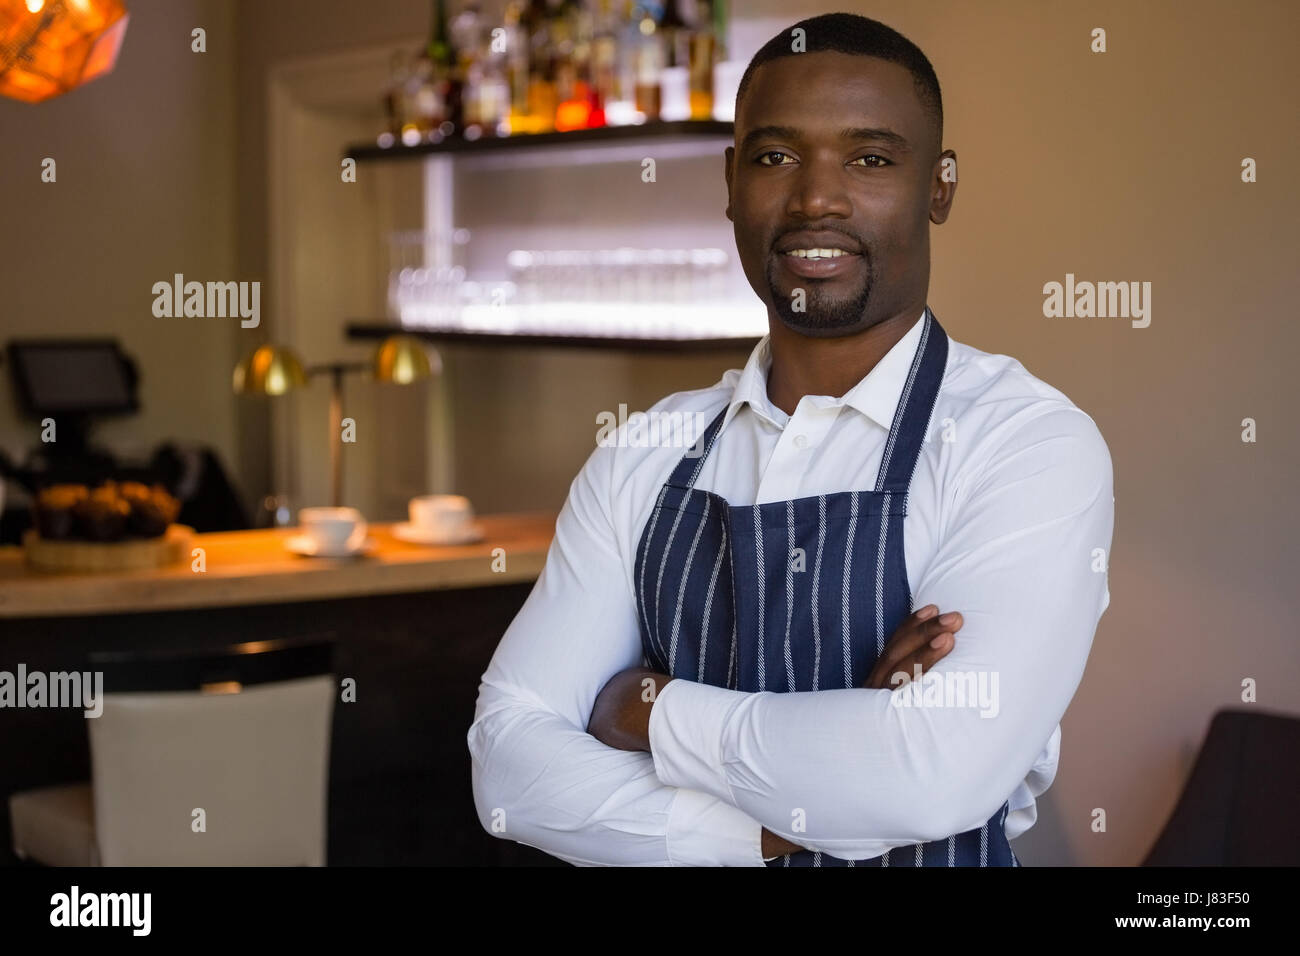 Portrait of confident waiter standing with arms crossed in restaurant - Stock Image